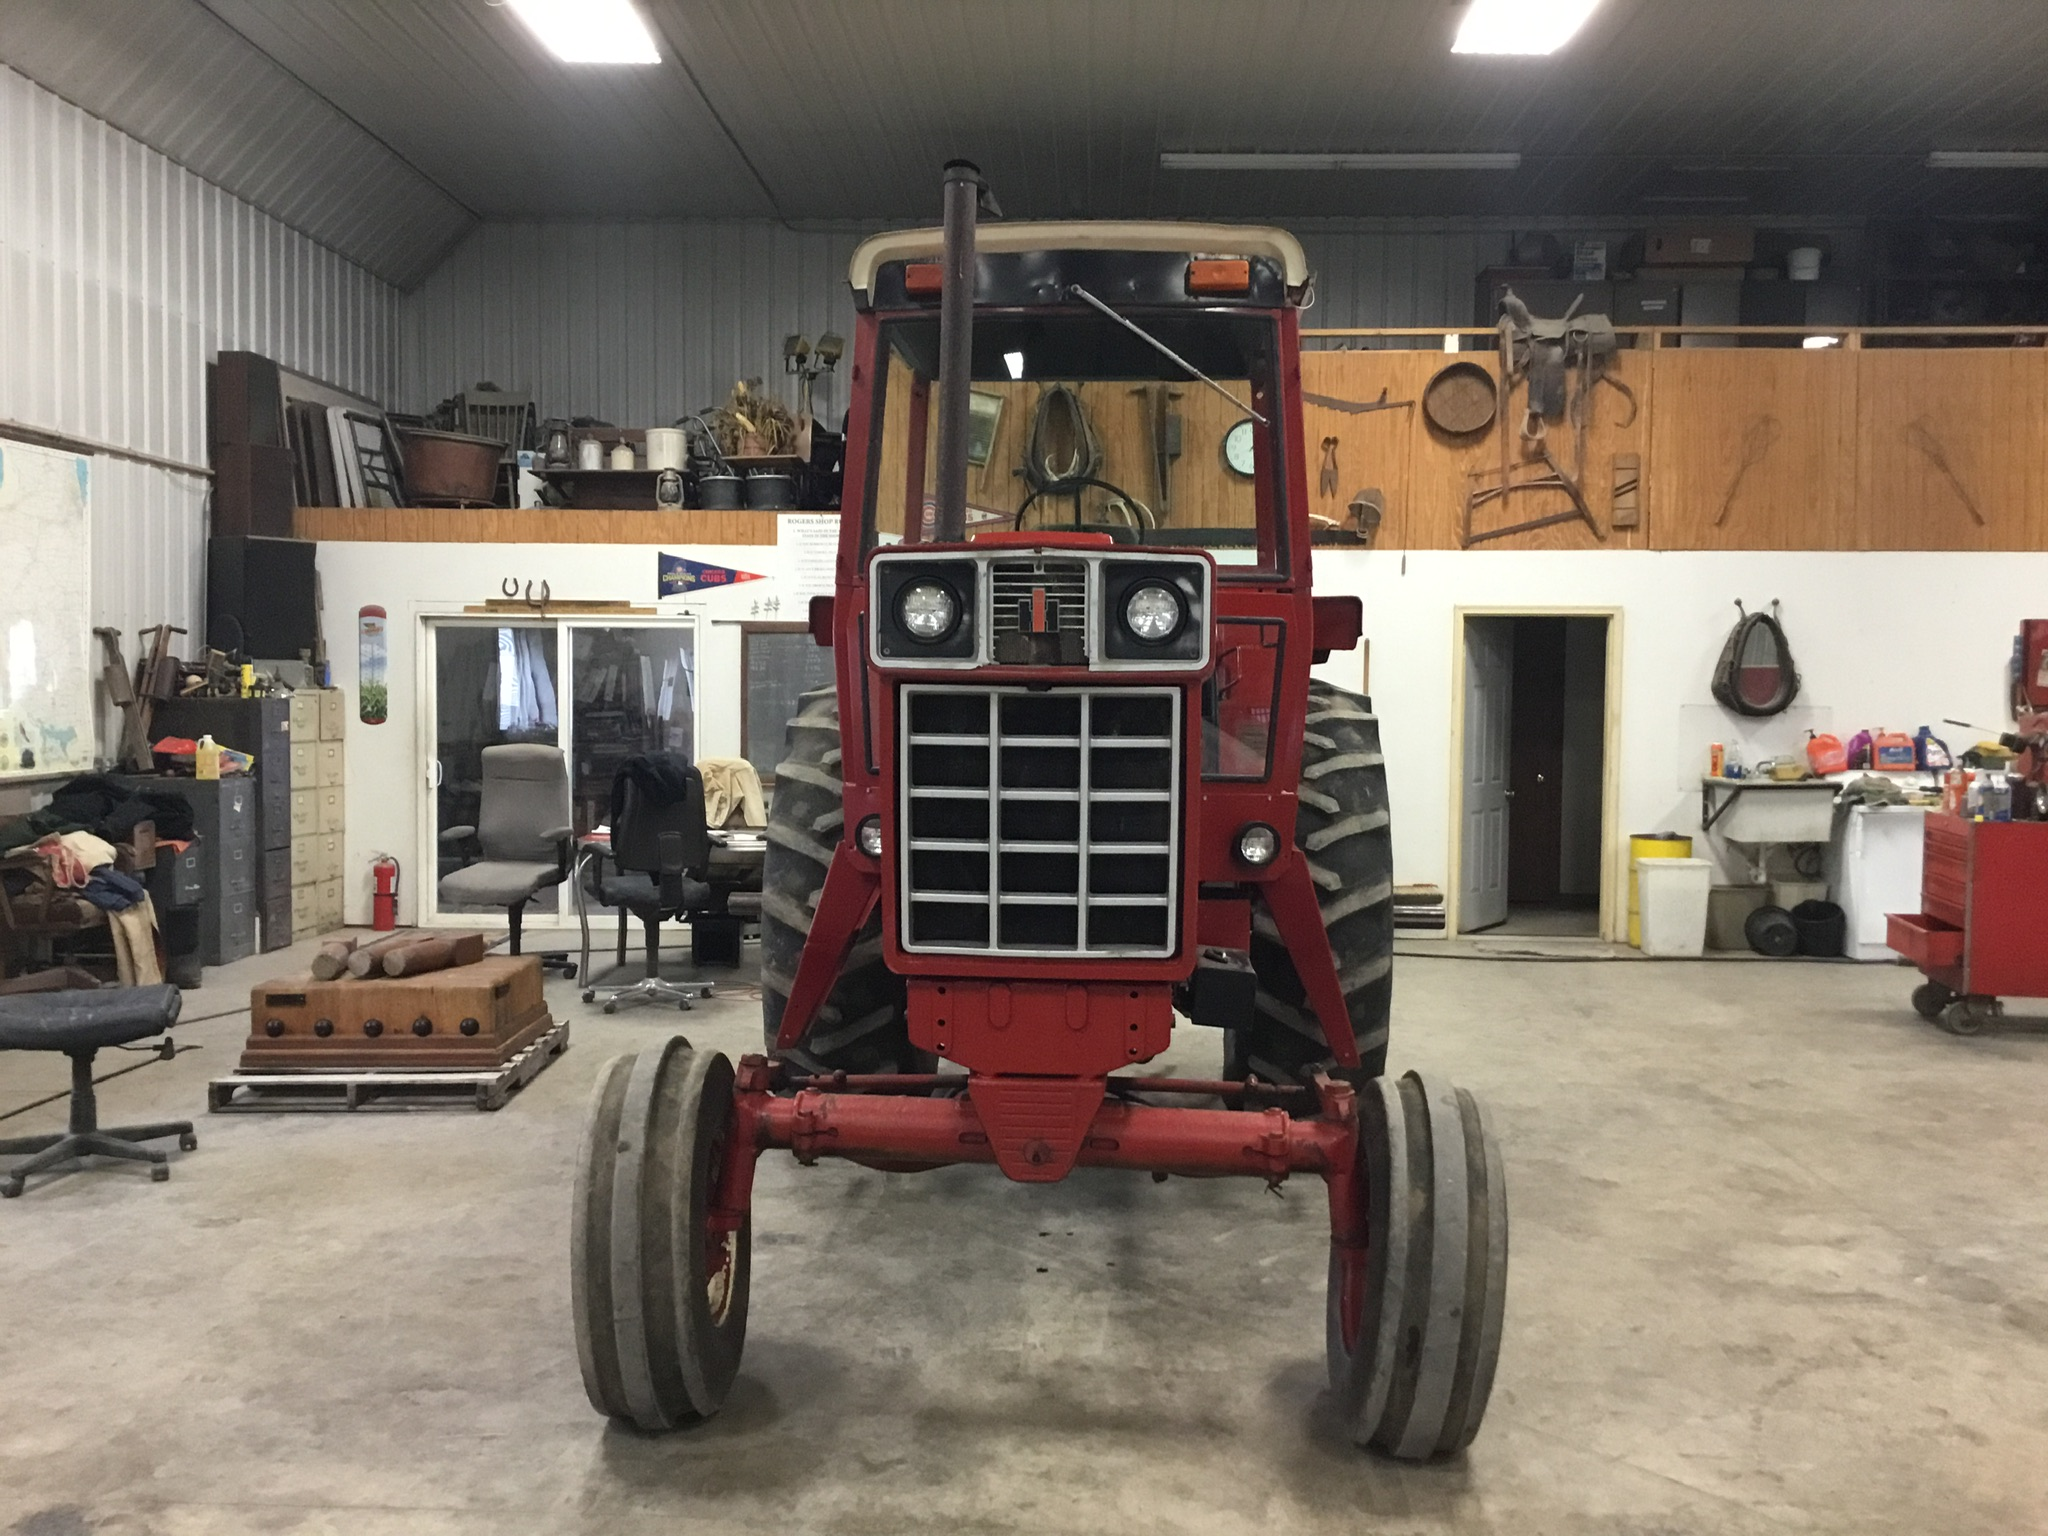 1976 International 886 Diesel, 4 Post Rops, 2 Hyd. Remotes, 3 Pt. Hitch, PTO, Serial #009595 - Image 5 of 8